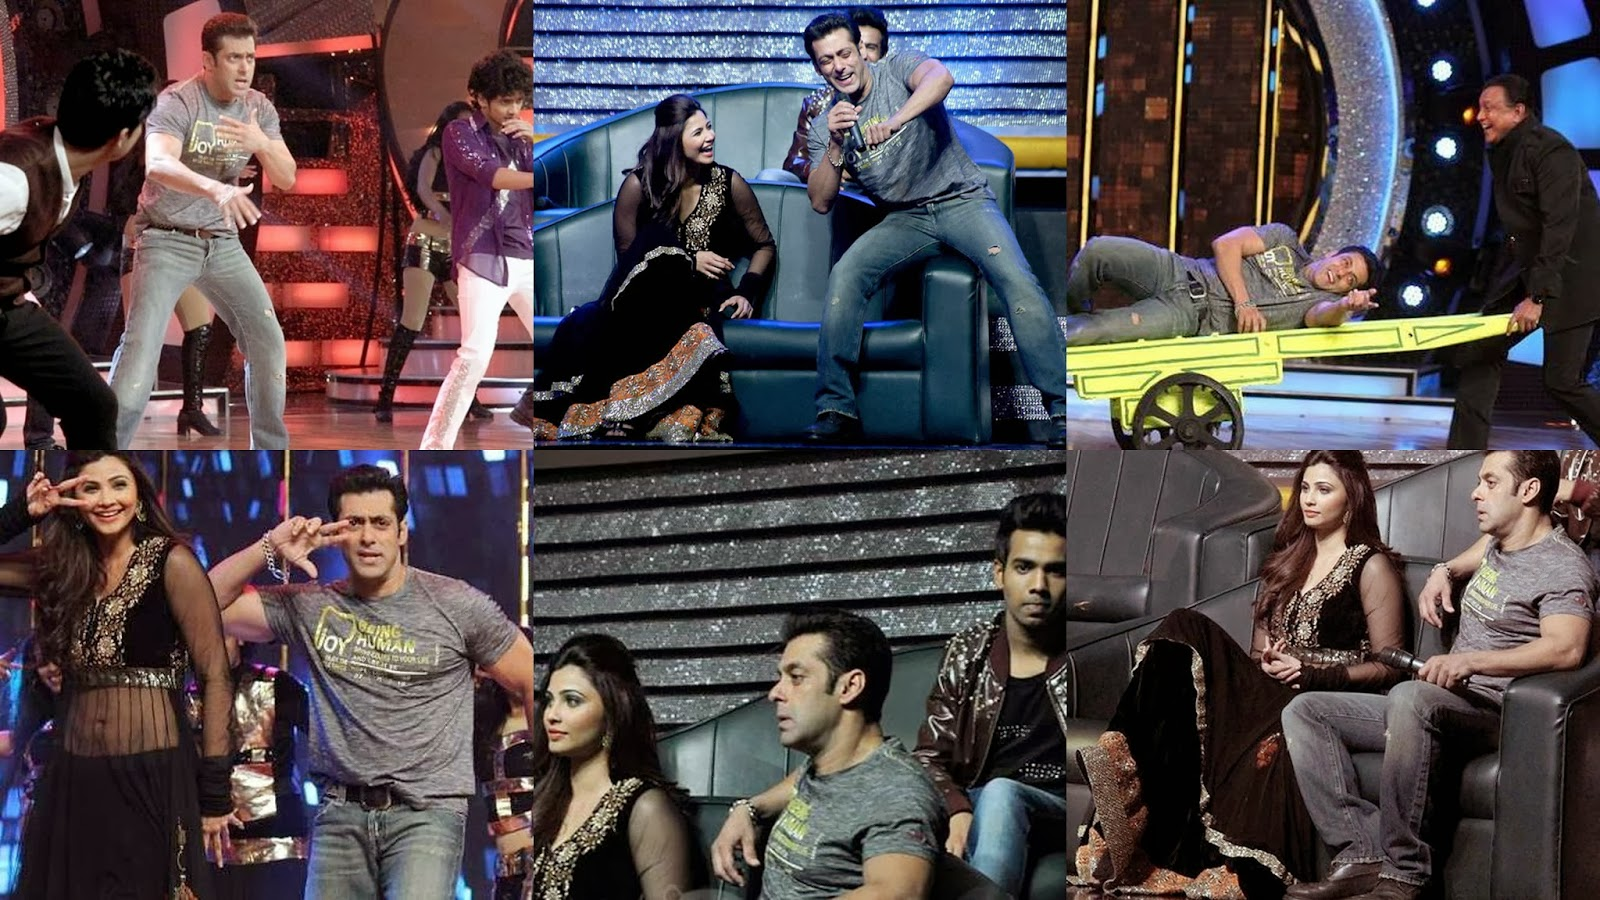 Salman and Daisy dancing in Dance India Dance show to promote Jai Ho movie